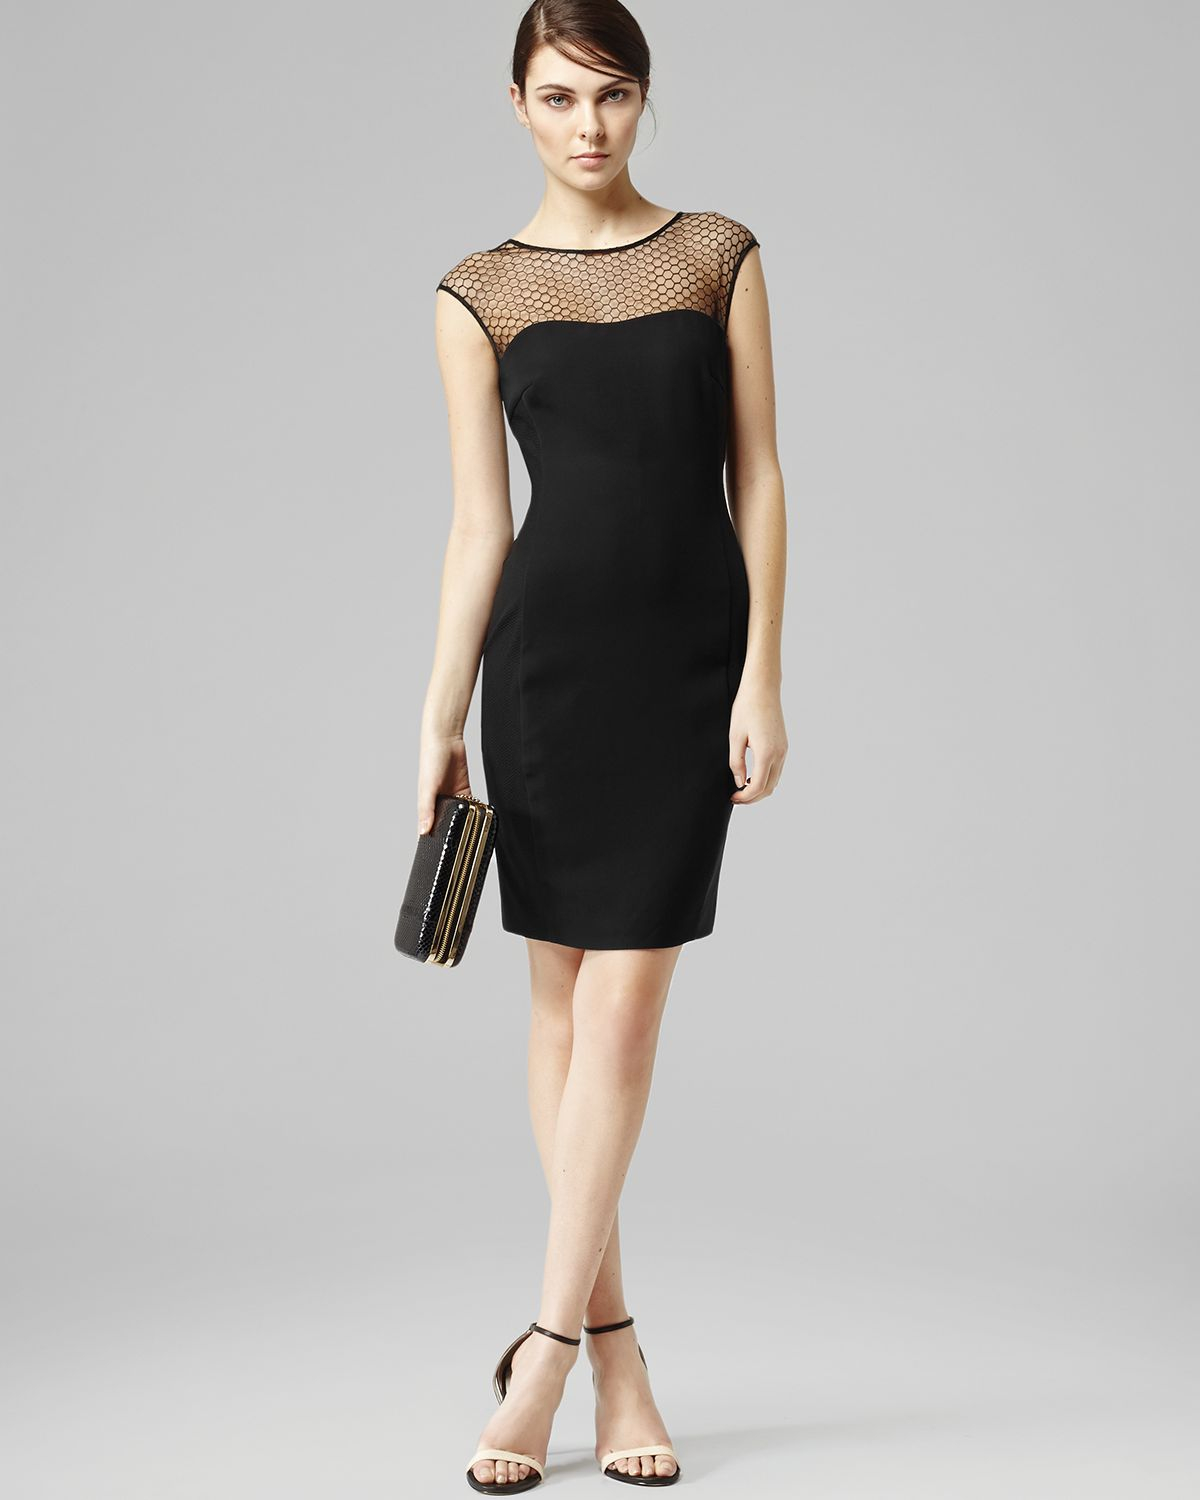 Black Illusion Dress: Honeycomb Illusion Neckline Fitted In